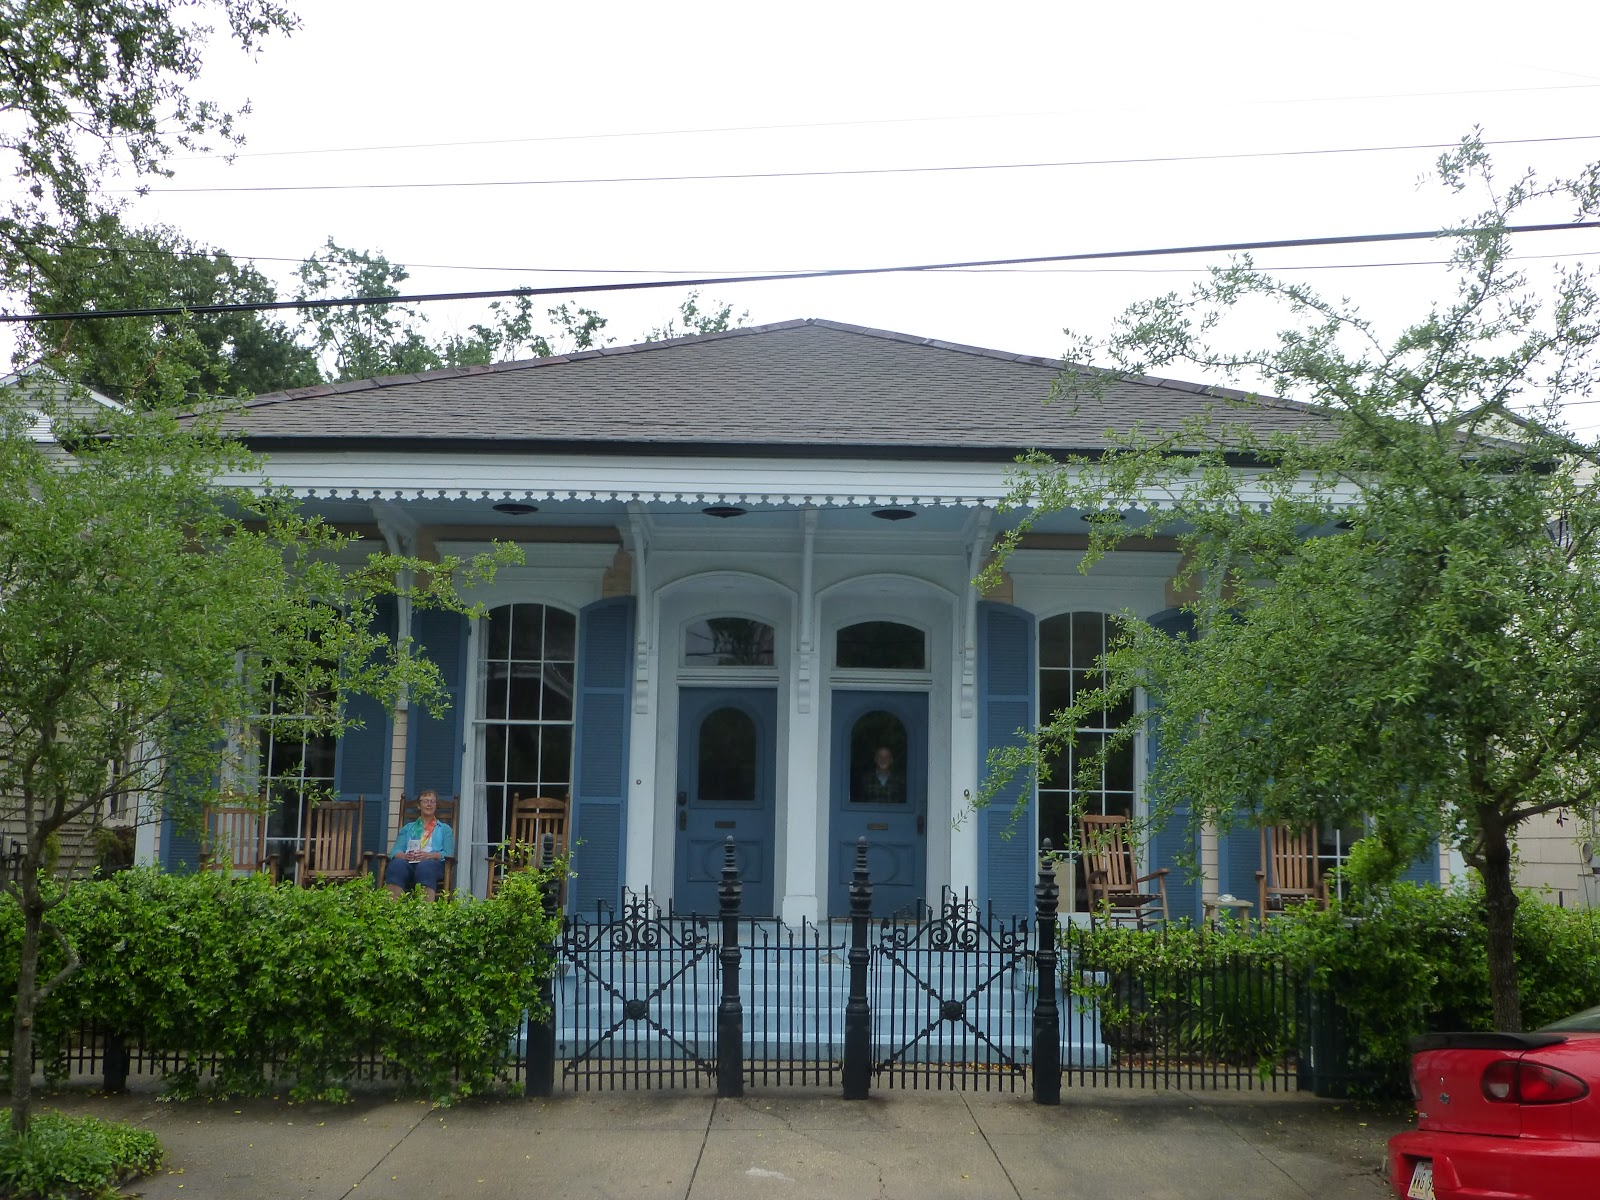 Our Friends Live In The Garden District, One Of The Oldest And Most  Beautiful Neighborhoods, Easily Accessible By Streetcar (and On Bike Or  Foot) From ...